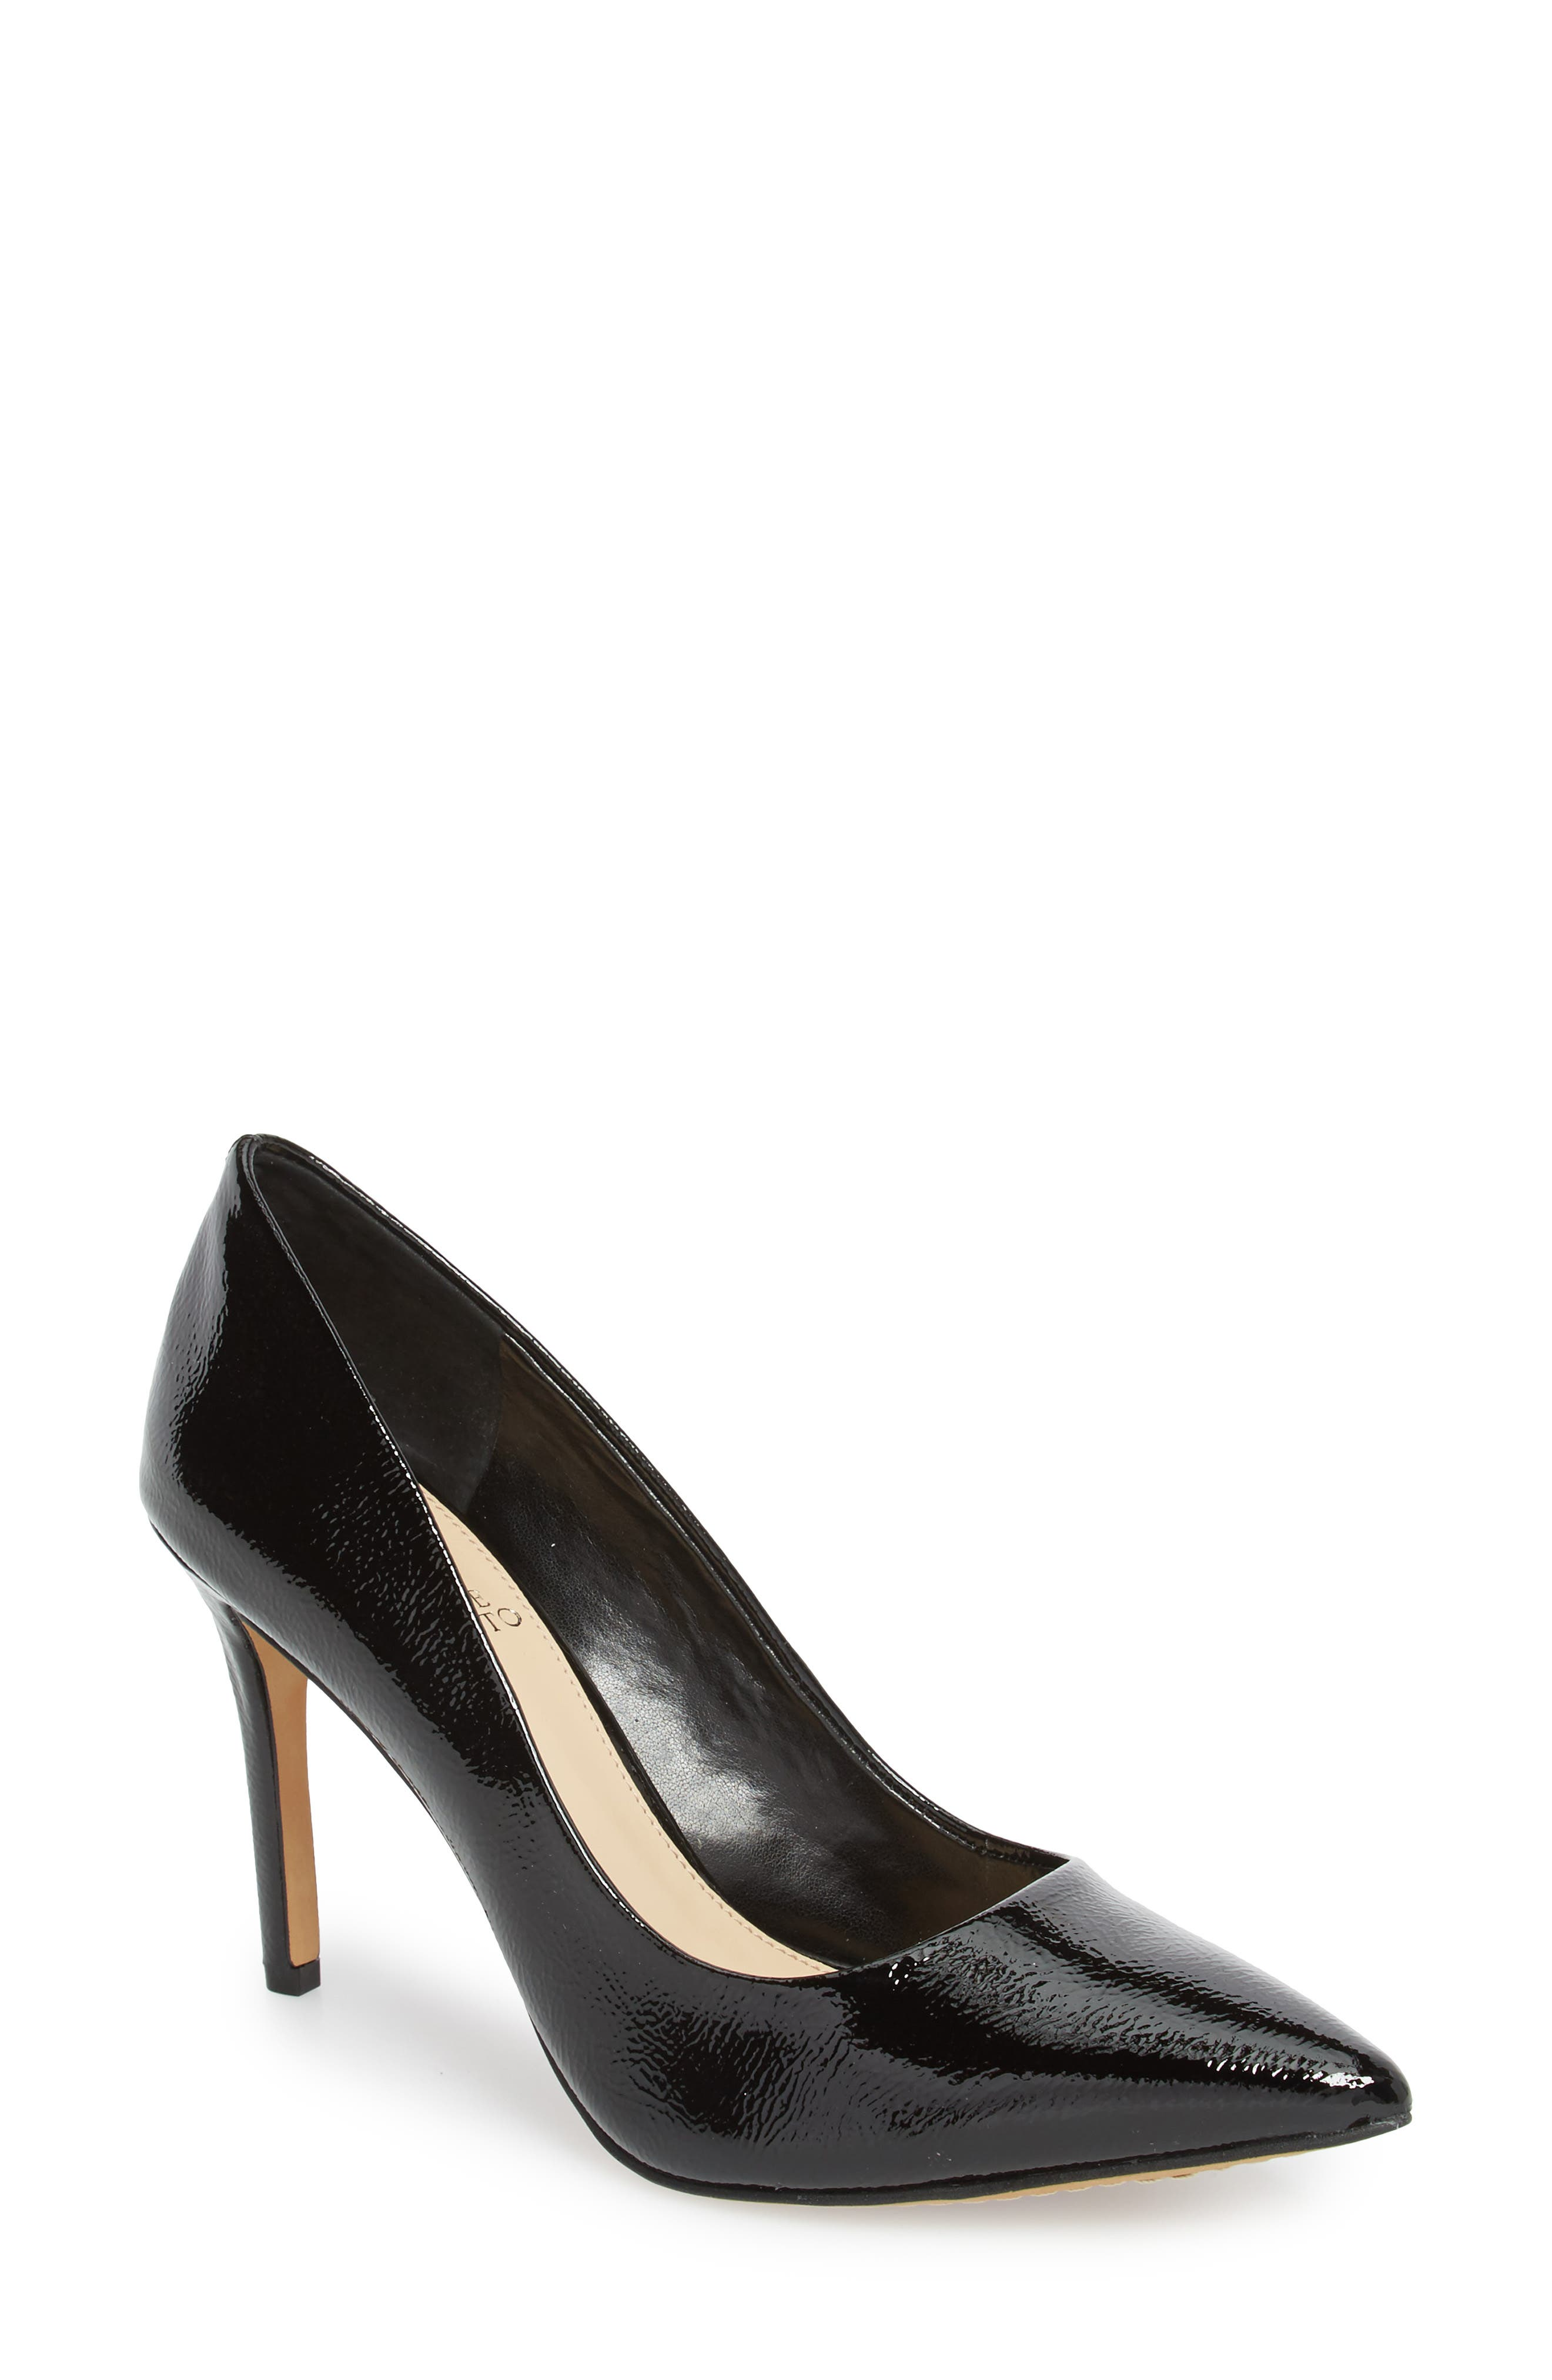 Savilla Pump,                             Main thumbnail 1, color,                             Black Patent